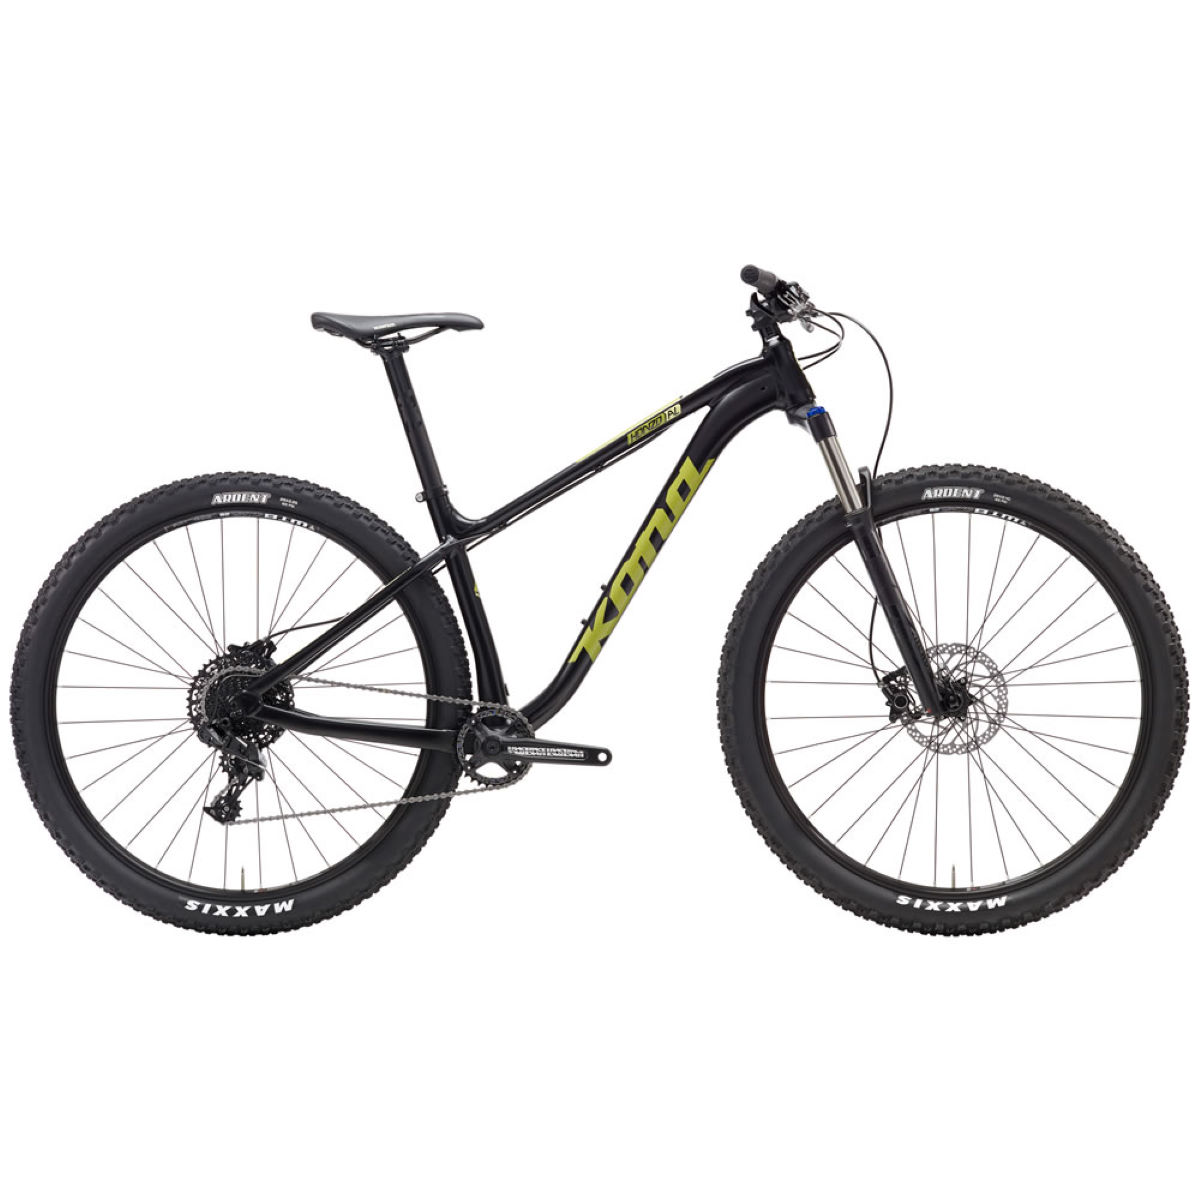 Kona Honzo AL (2017) Mountain Bike   Hard Tail Mountain Bikes